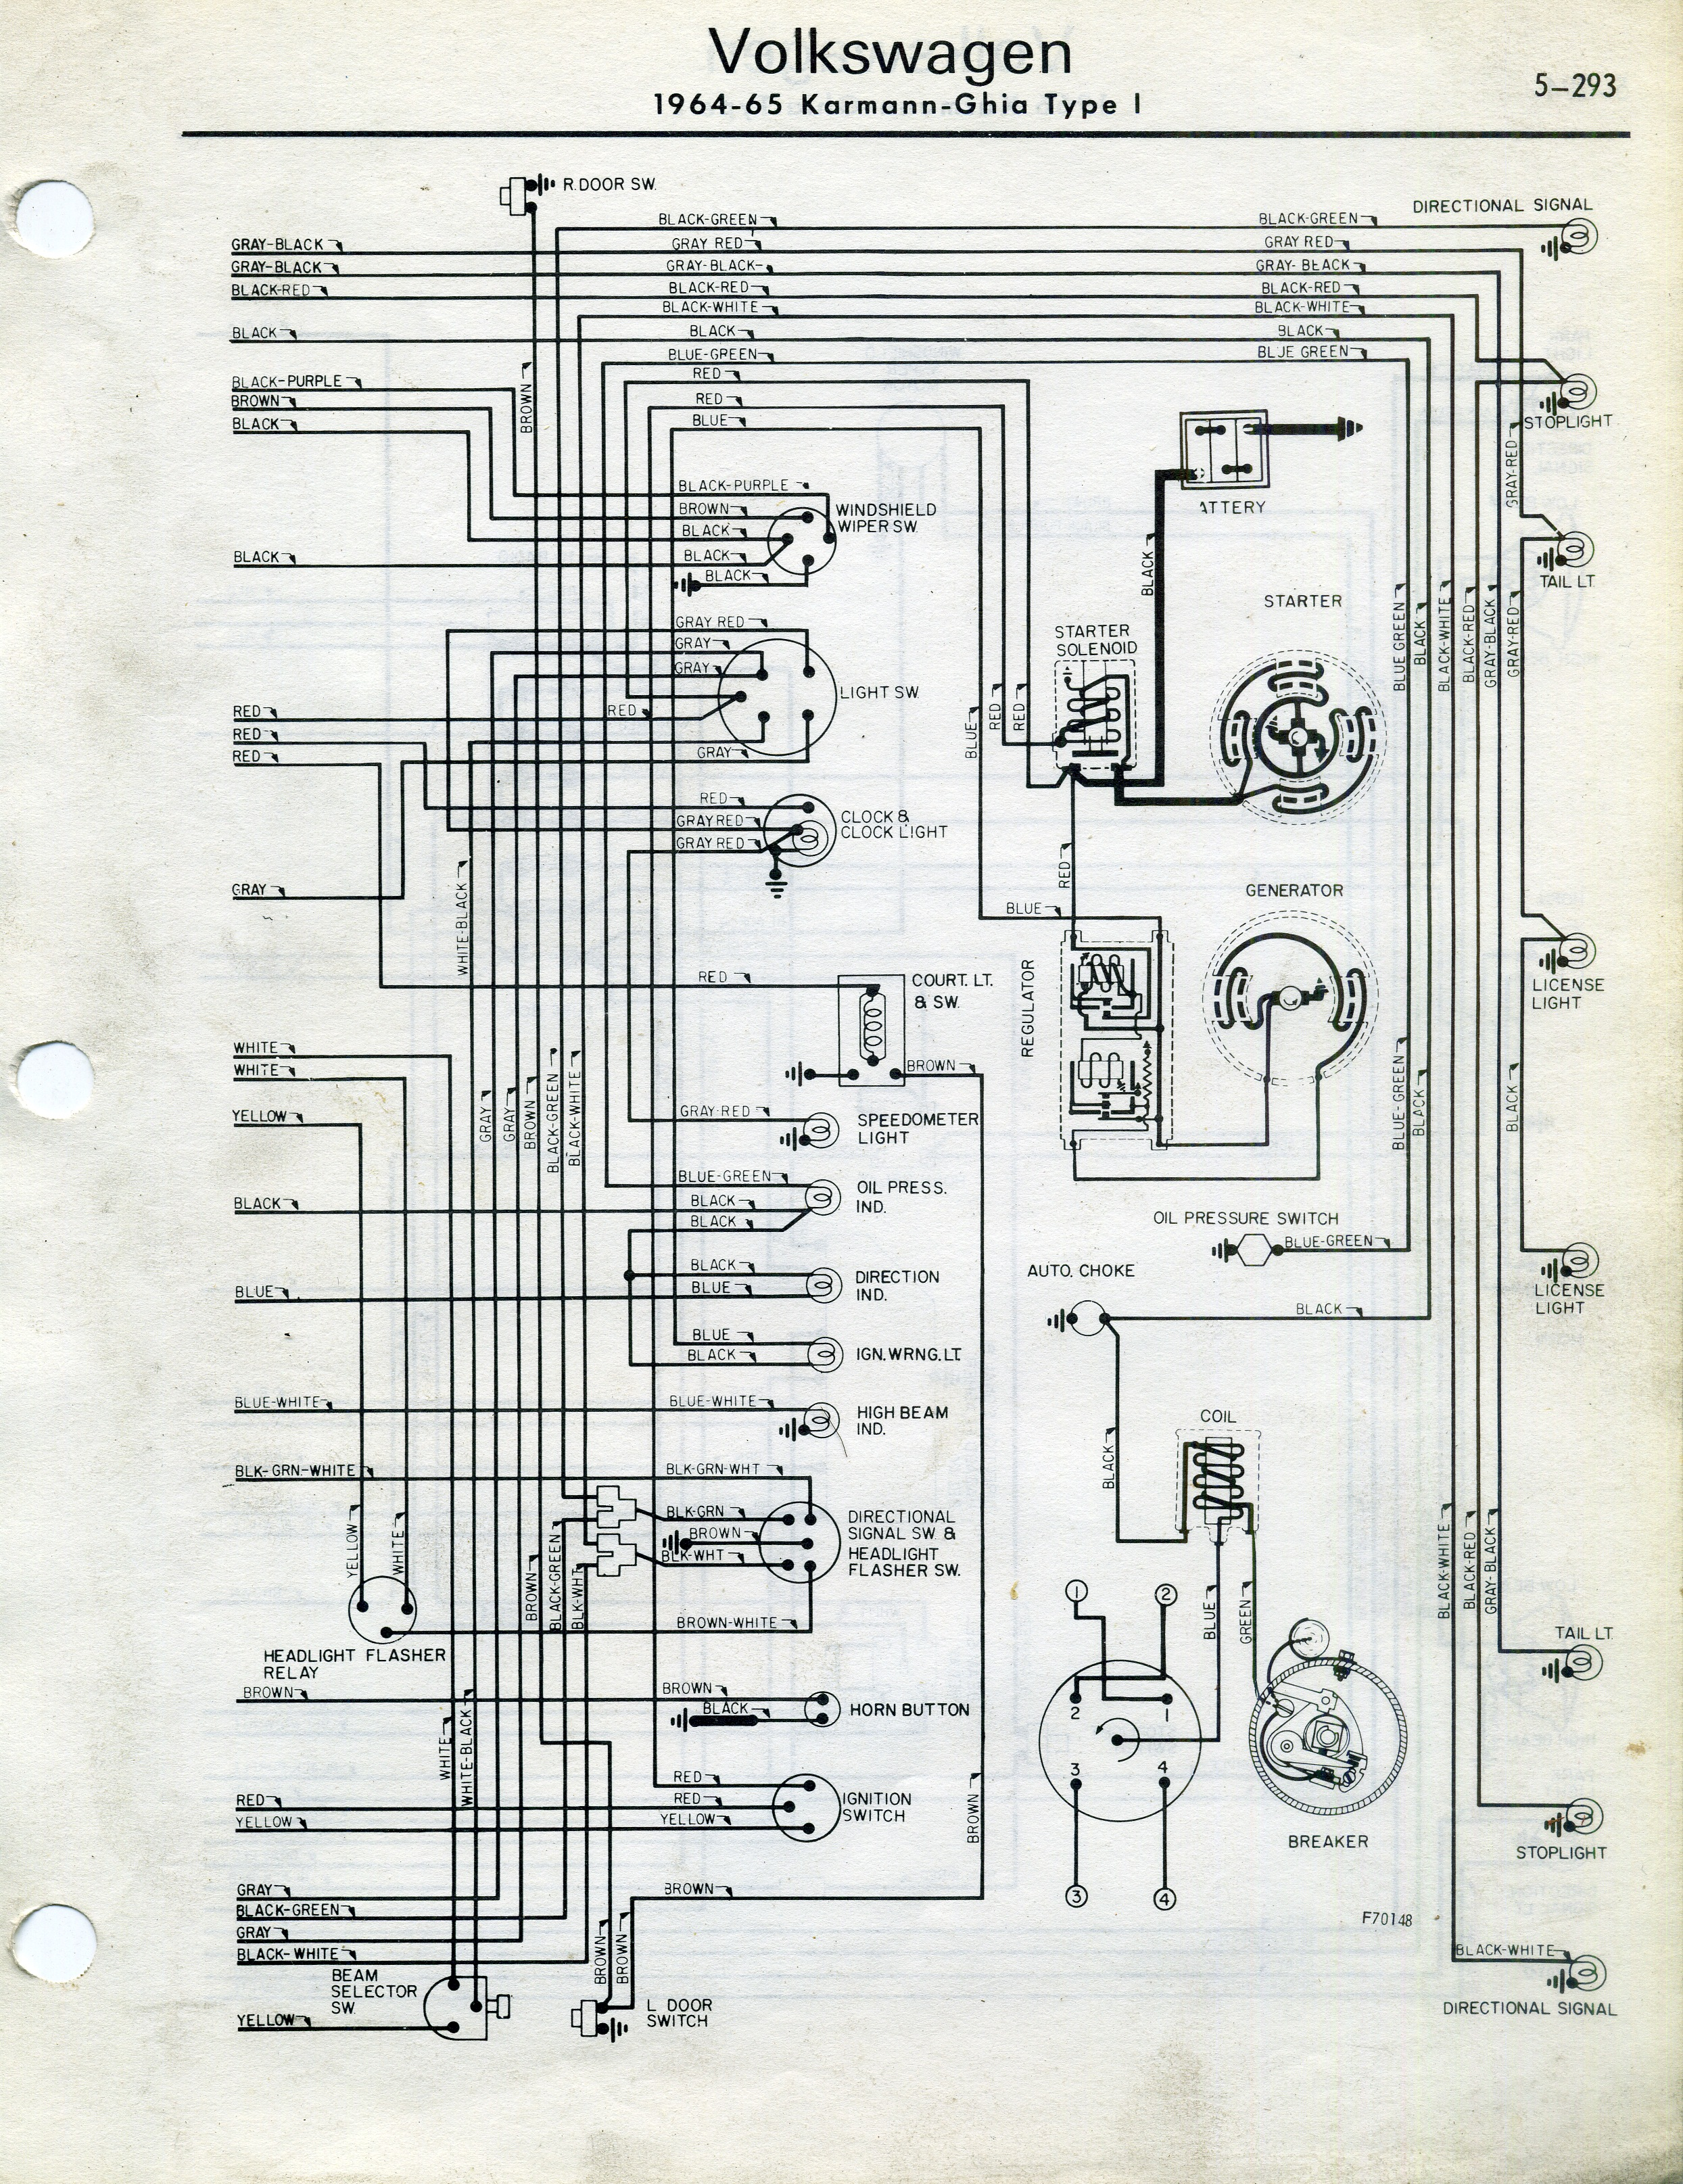 74 karmann ghia wiring diagram 71 karmann ghia wiring diagram #11